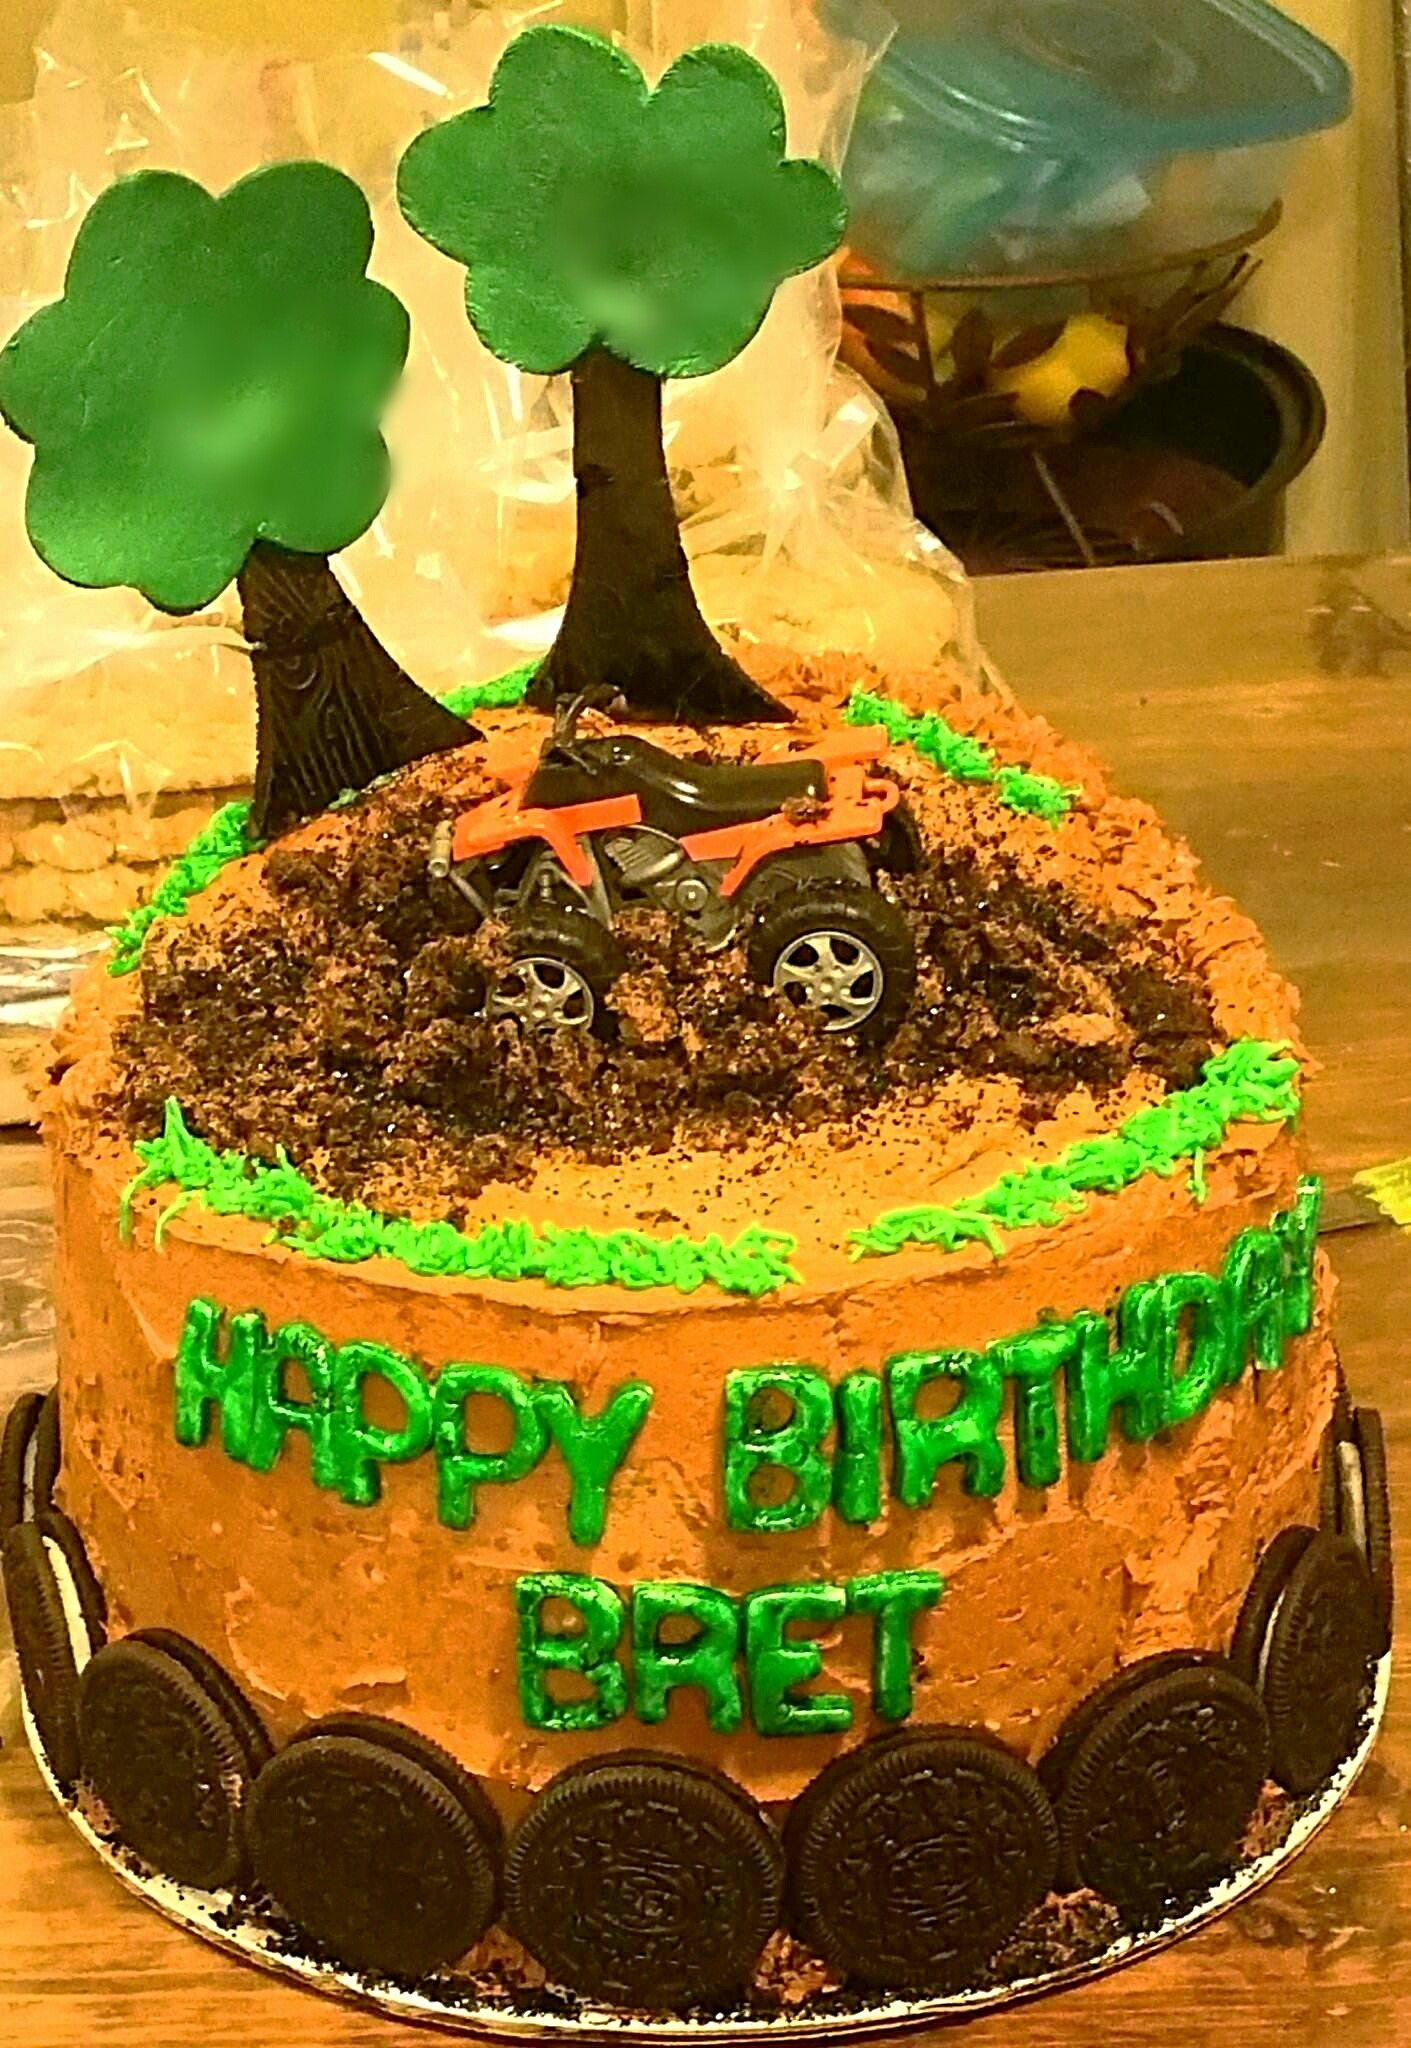 Swell Gone Mudding Chocolate Cake With Cookies And Cream Filling Funny Birthday Cards Online Aboleapandamsfinfo